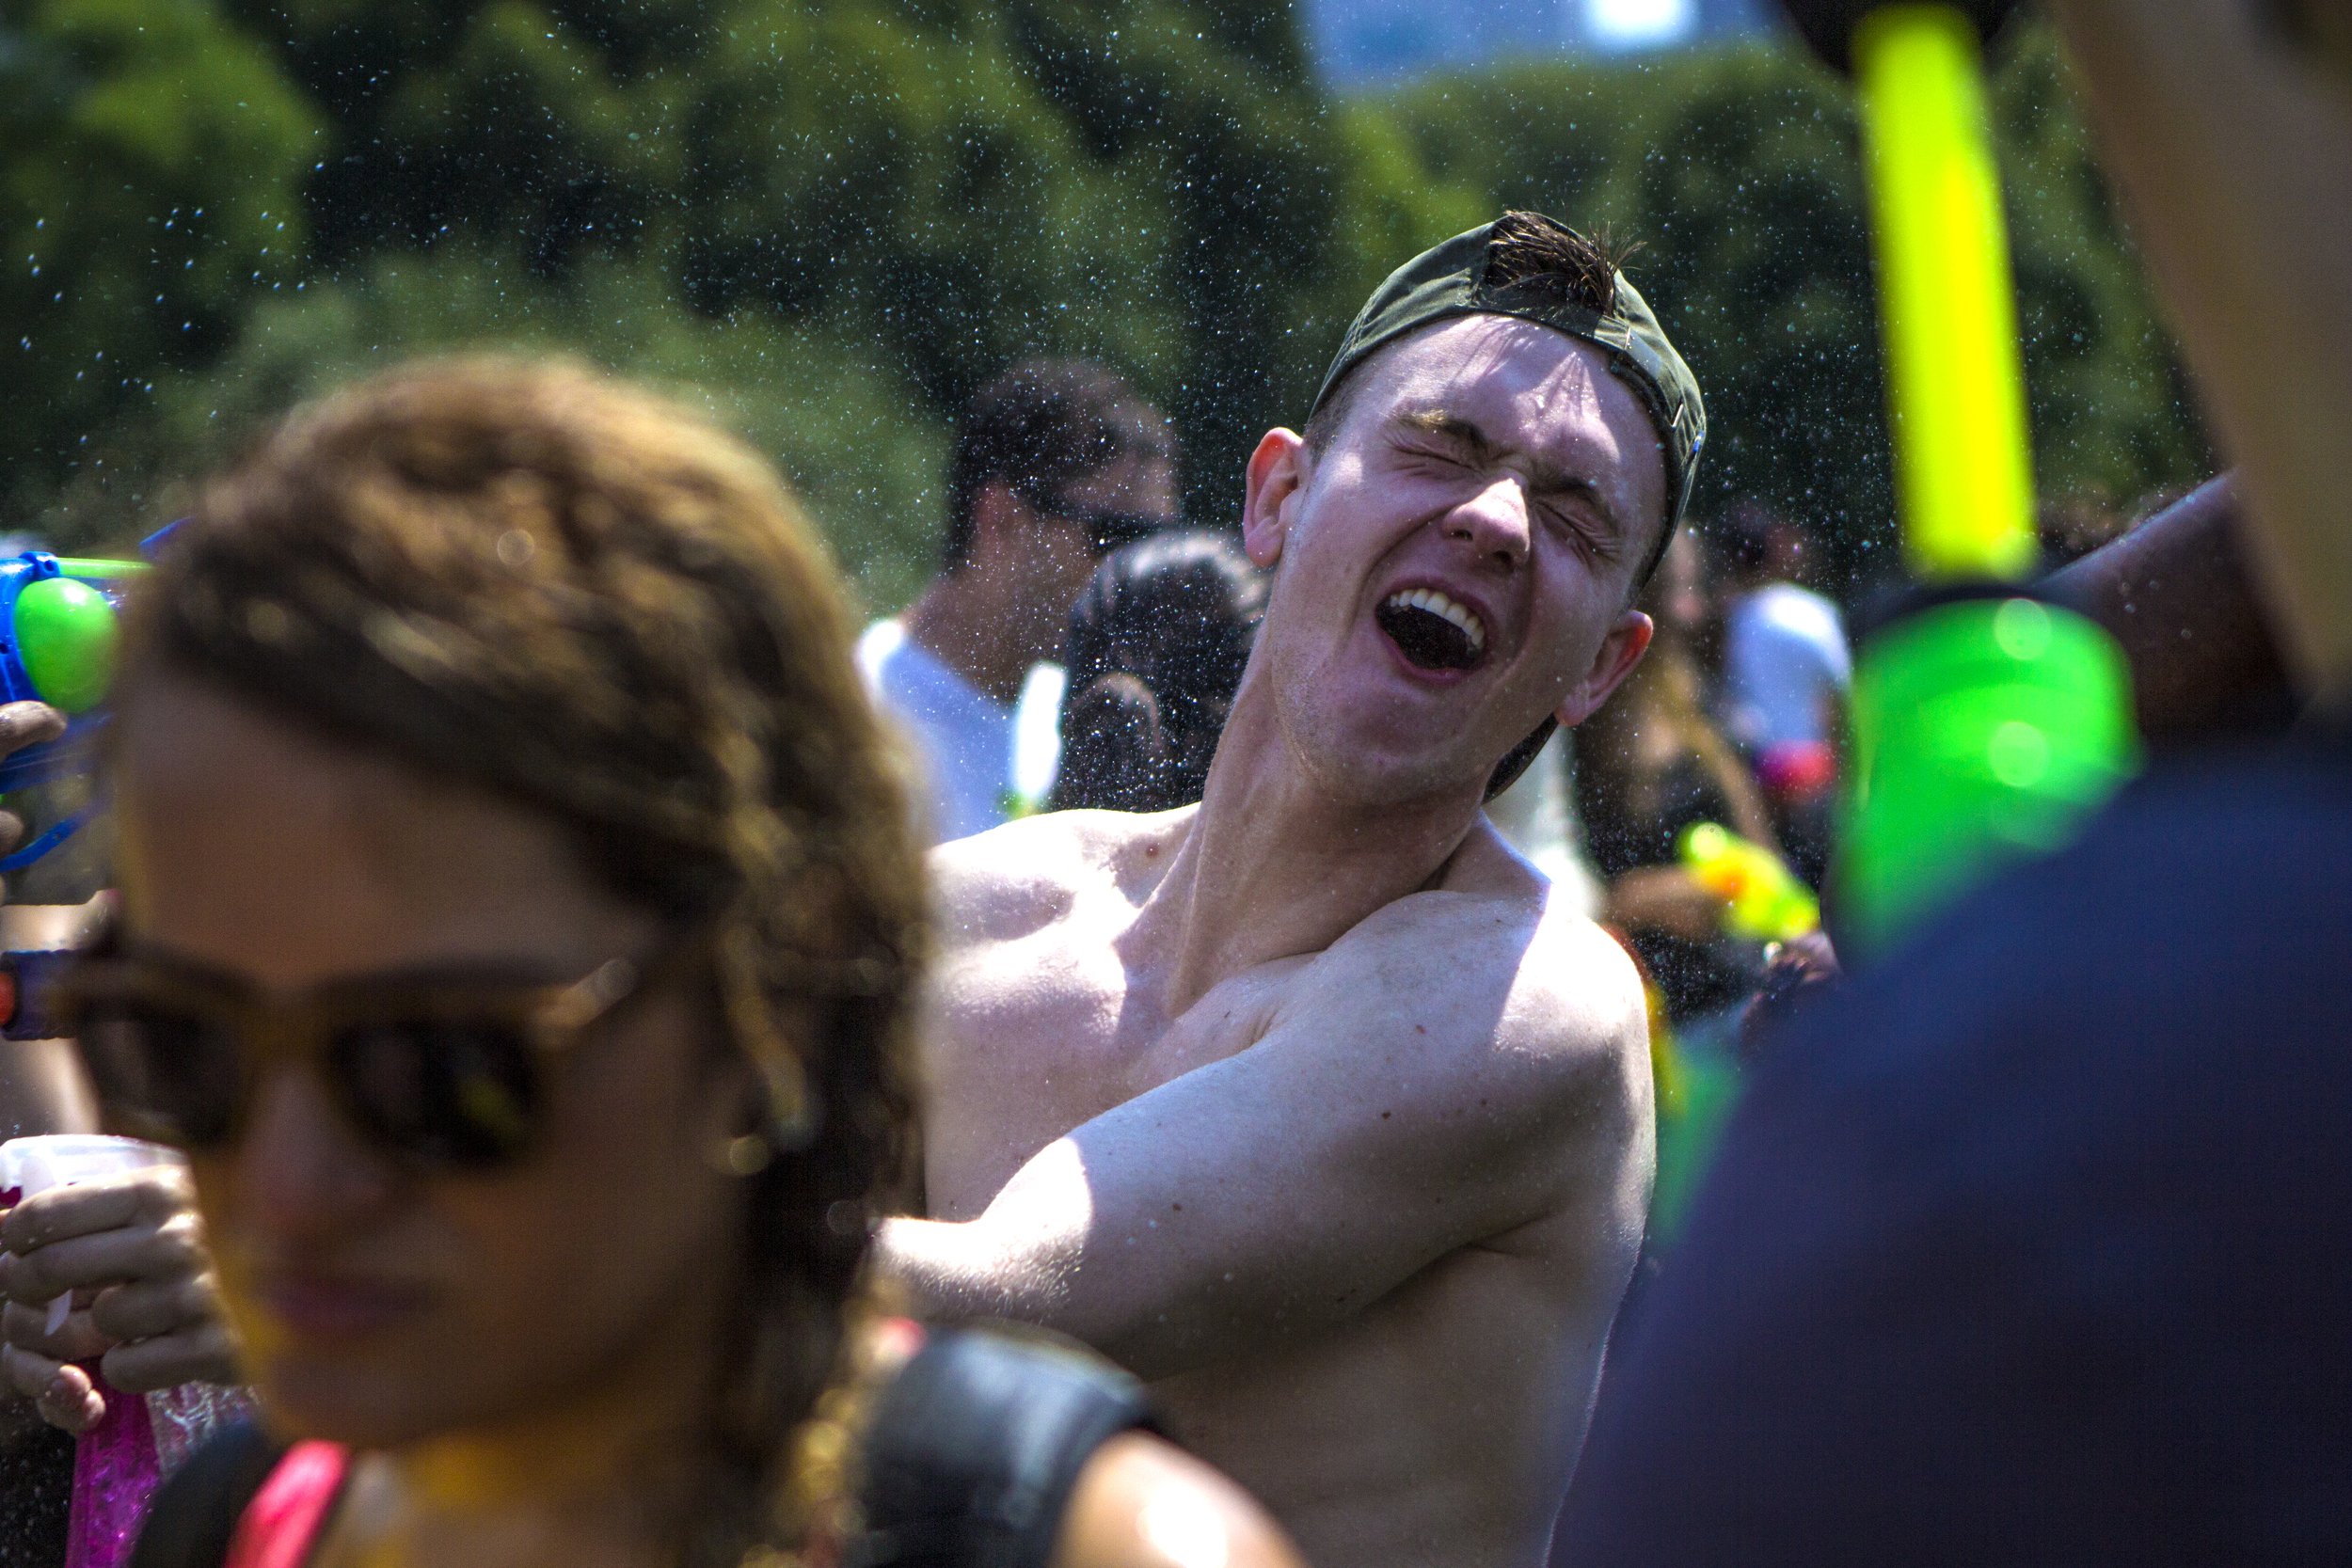 Thousands of people gathered in Central Park for a massive water fight on July 25, 2015.  Shot for the Village Voice.